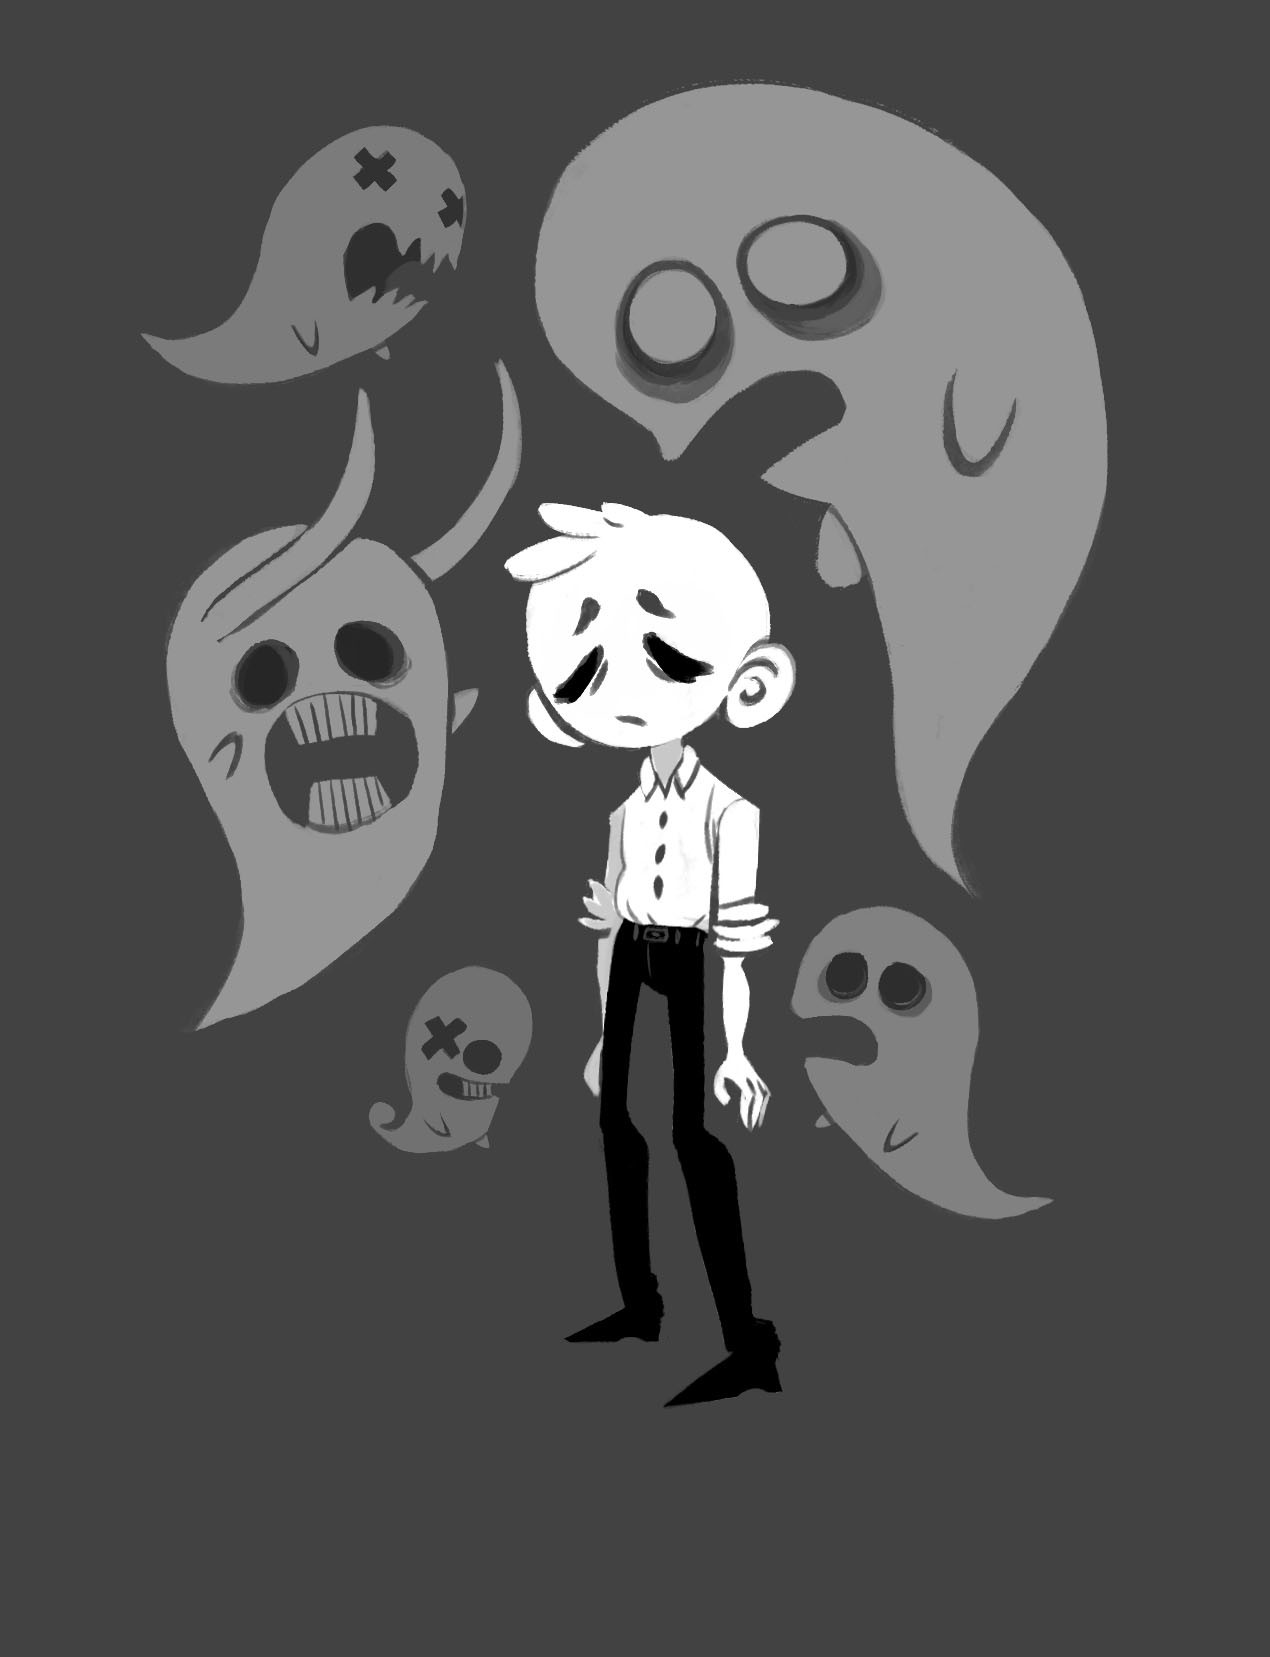 yodeki off mortis ghost fanarts